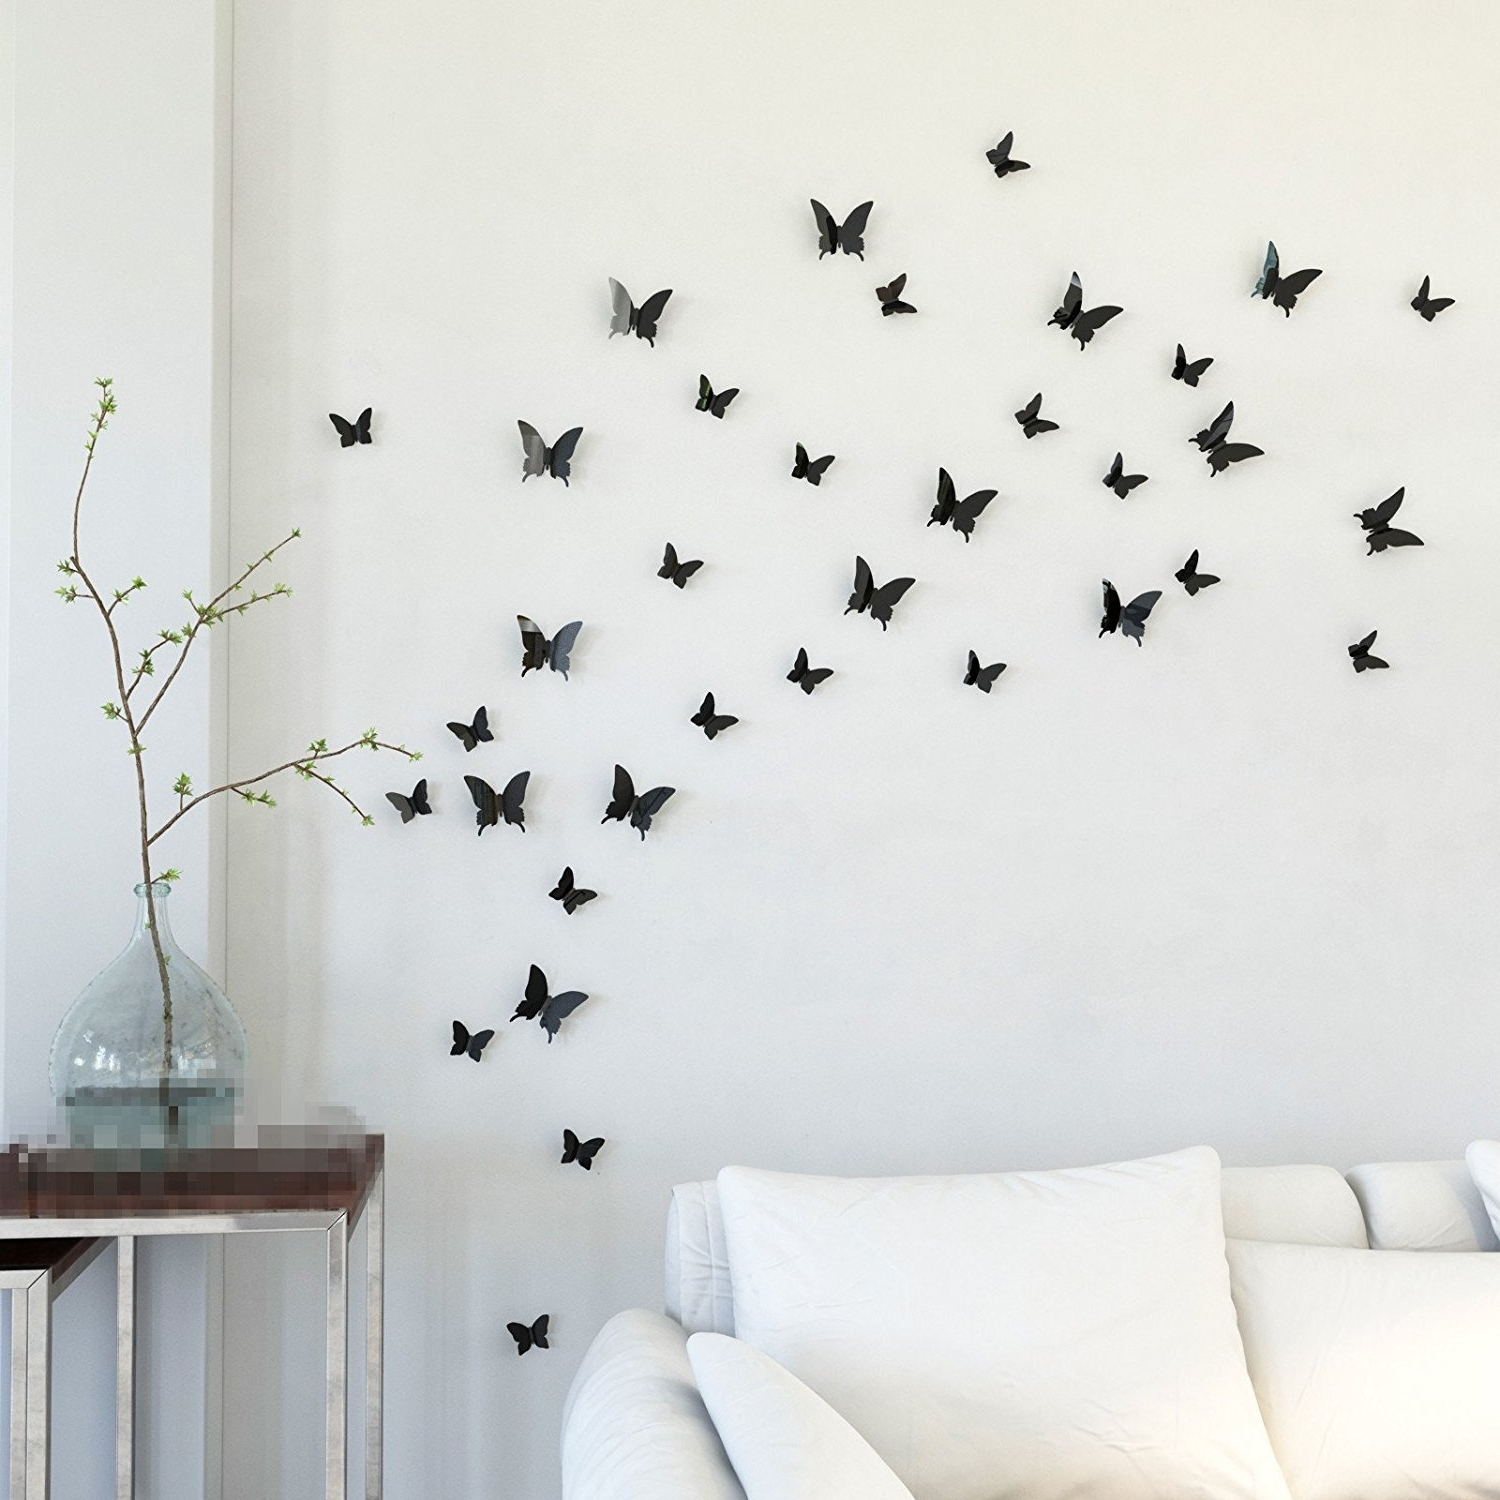 Newest Smart Butterfly Wall Decor D Butterfly Wall Decor Stickers To Within 3D Removable Butterfly Wall Art Stickers (View 12 of 15)